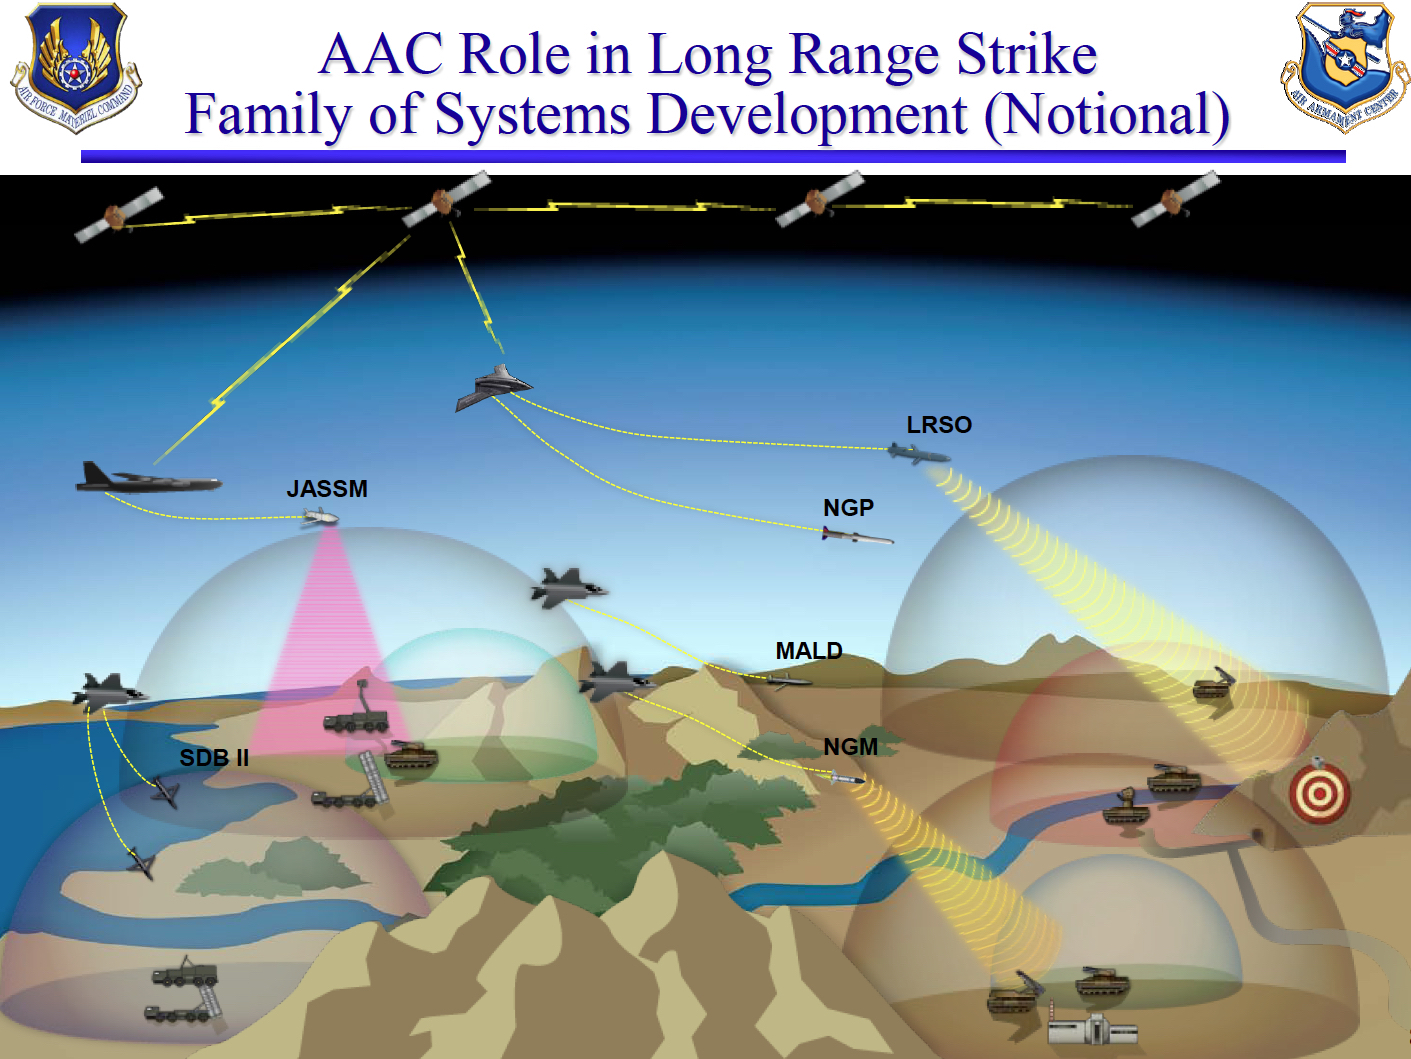 This Air Force briefing slide from 2011 shows the LRSO used against air-defense systems, similar to scenarios described by Air Force officials in 2014.